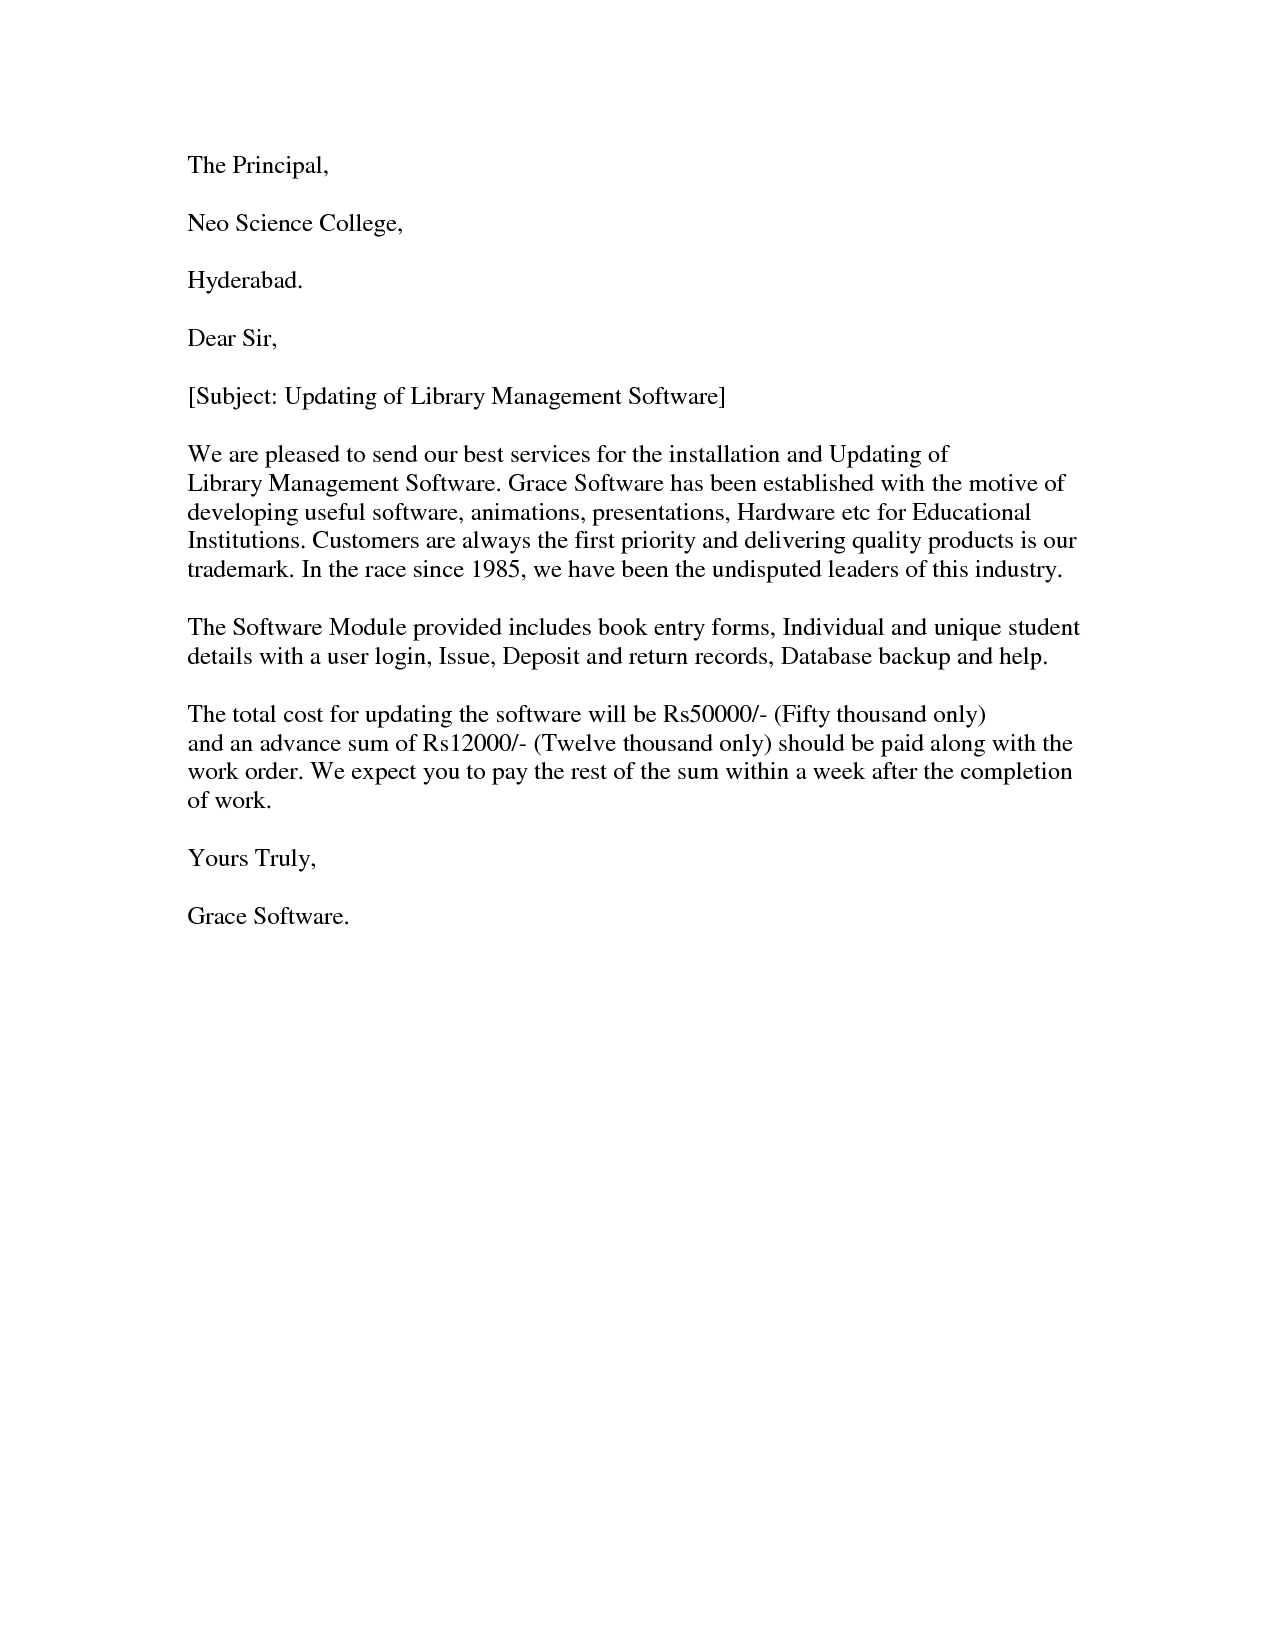 Proposal Letter To A Principal  Sample Proposal Letter To A